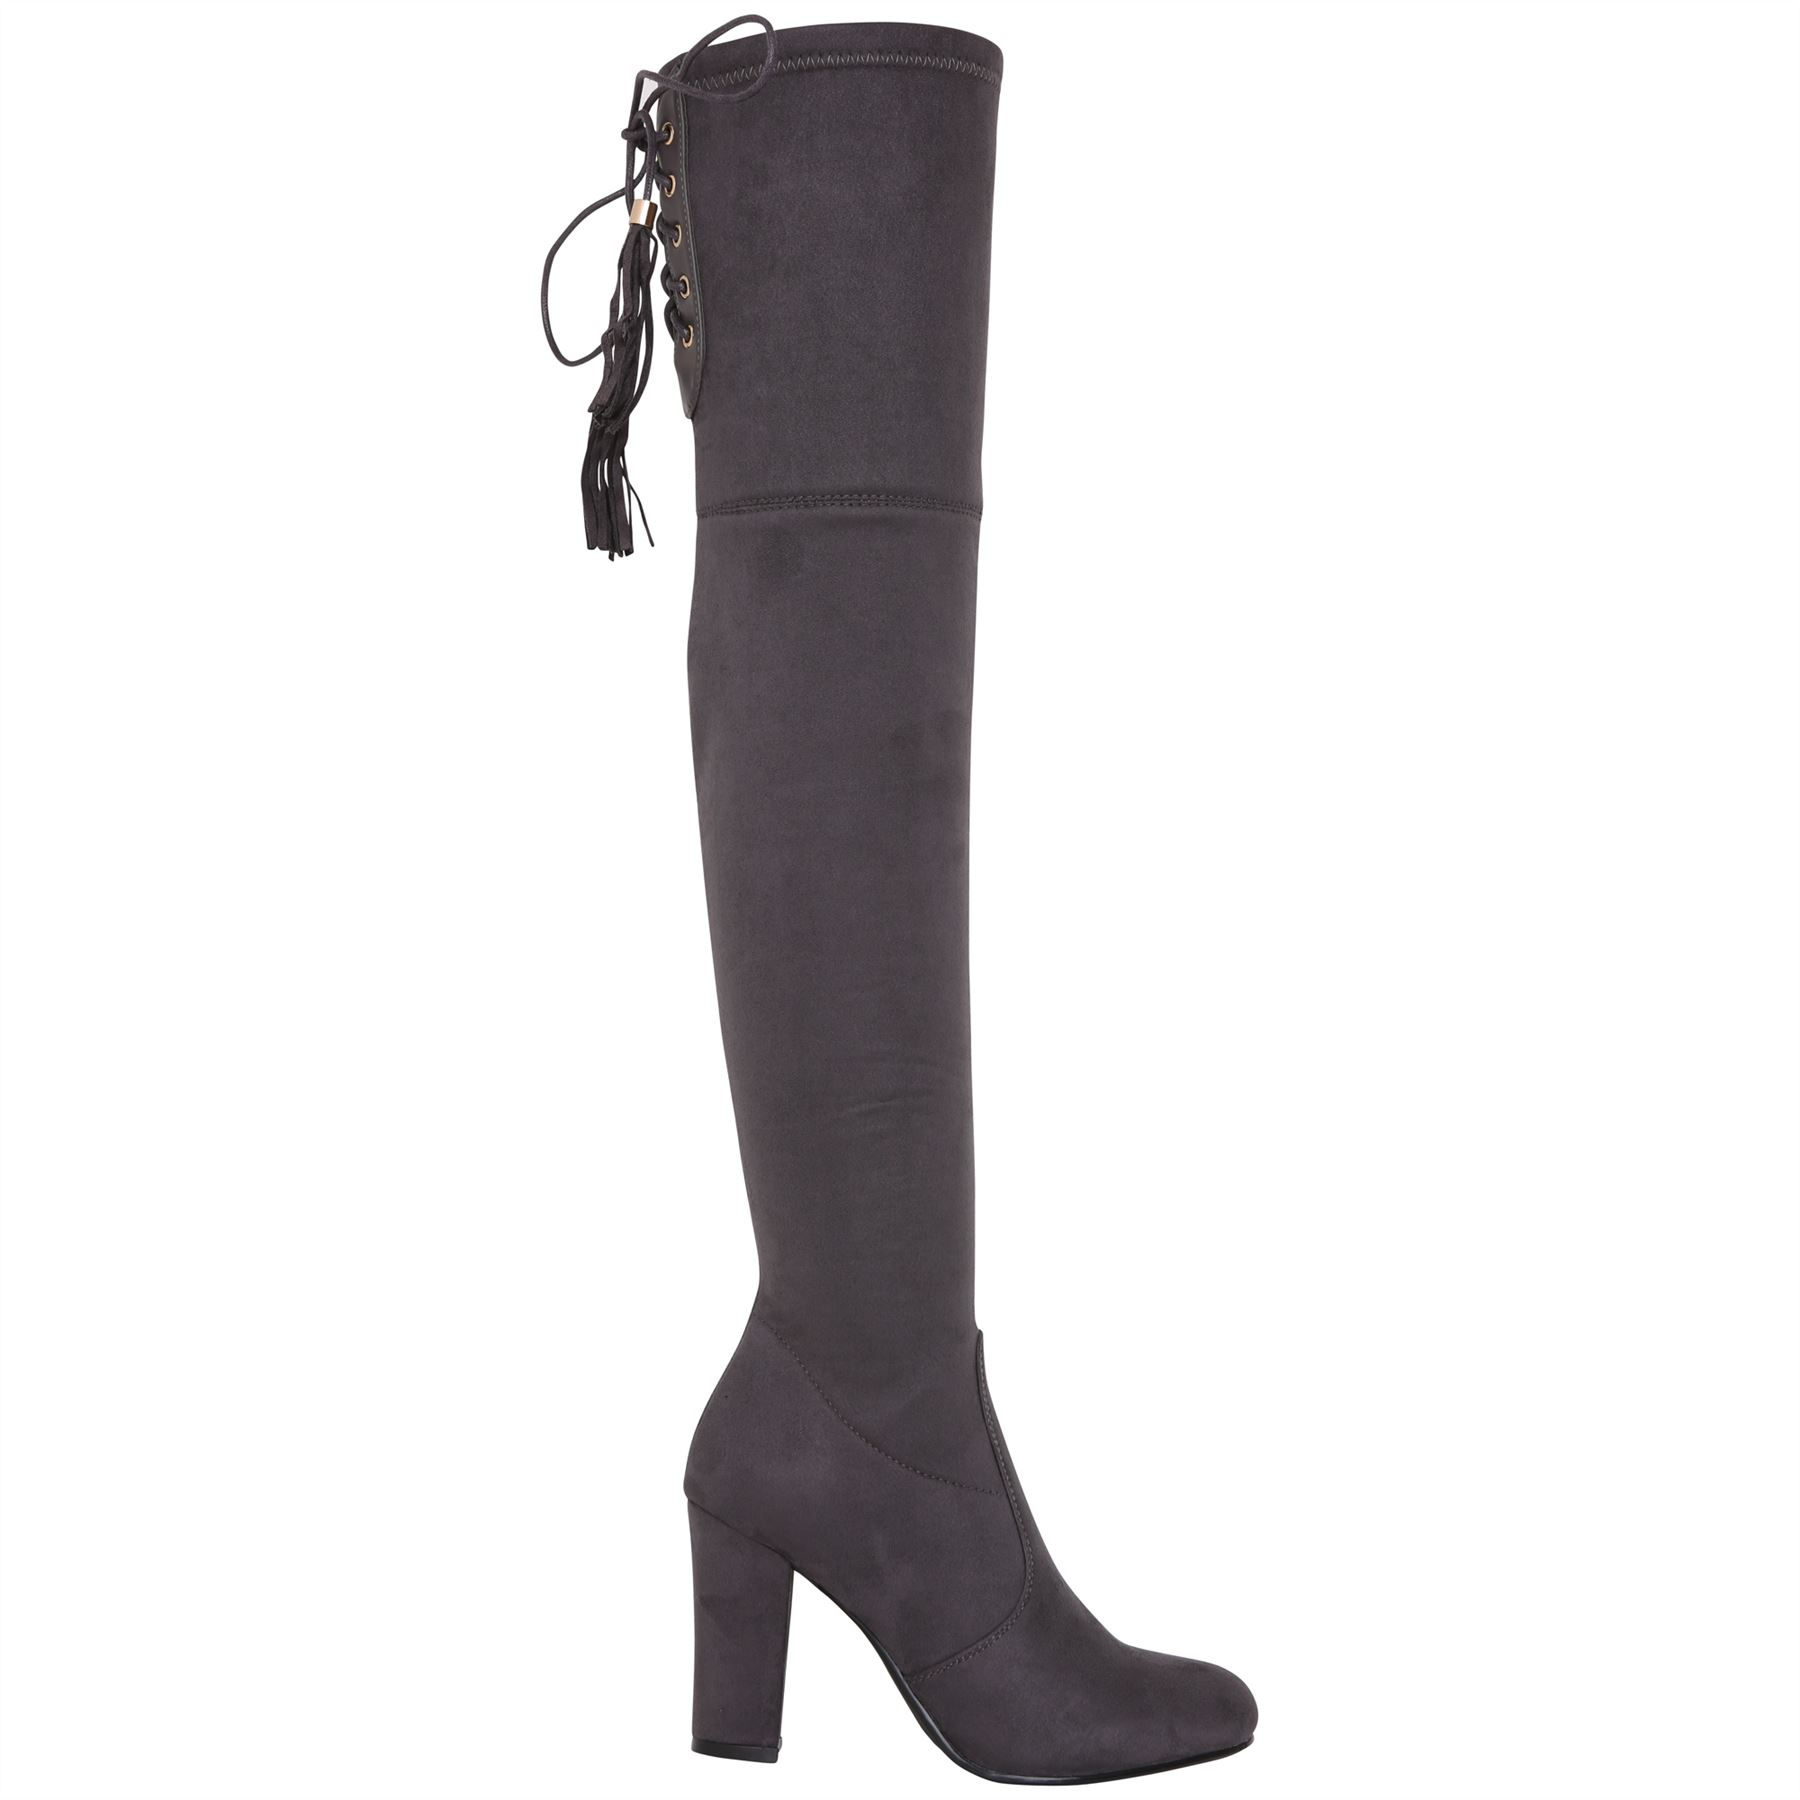 Womens-Over-Knee-High-Boots-Ladies-Low-Block-Heel-Riding-Stretch-Winter-Shoes miniatura 15